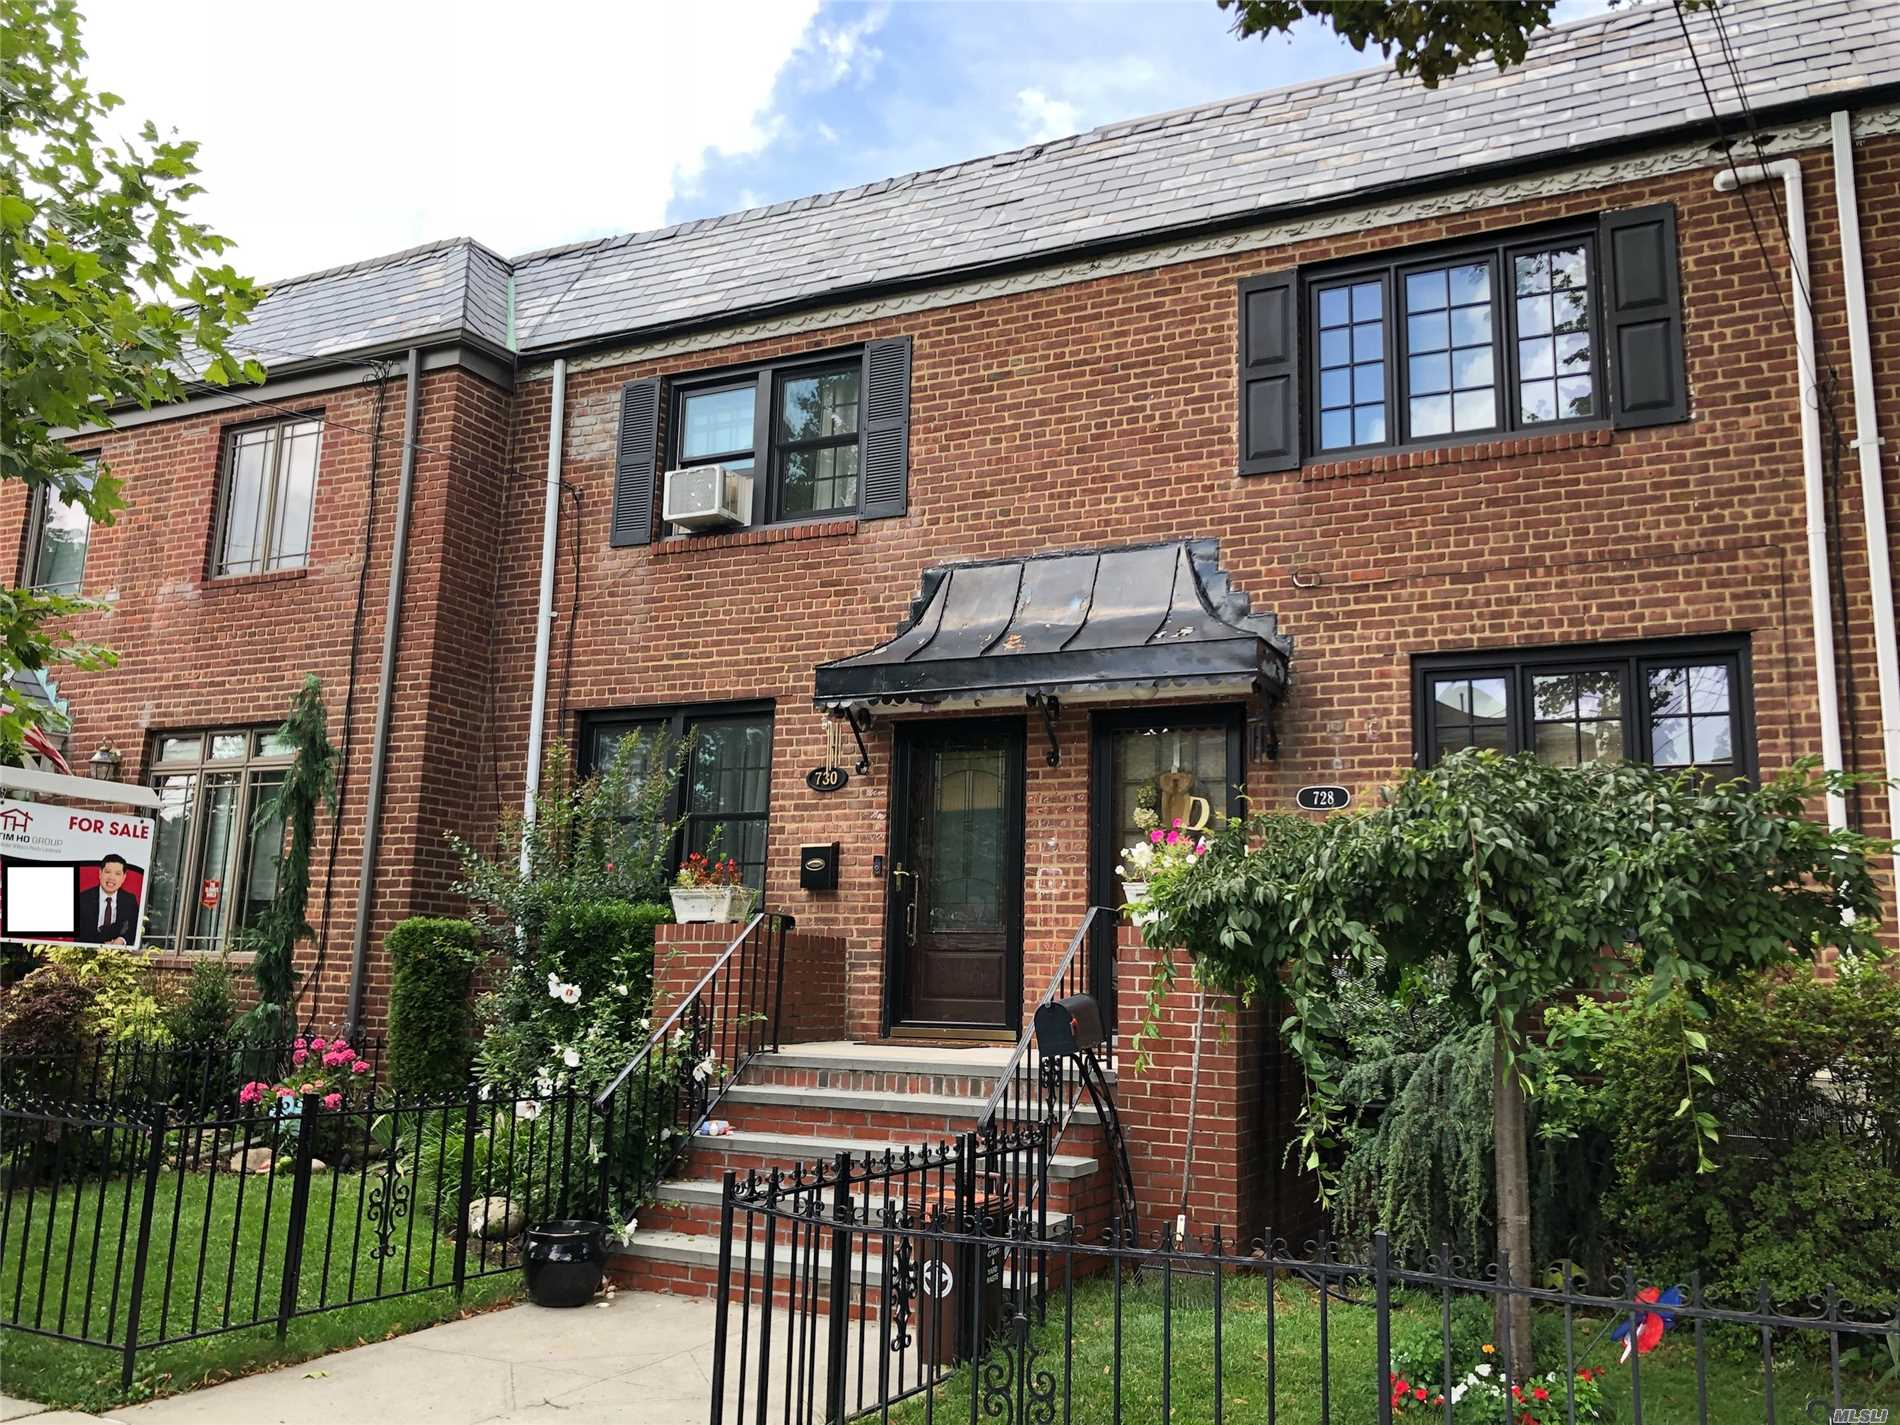 Location Location!Located In The Heart Of Beechhurst With Views Of Both The Throgs Neck And Whitestone Bridge. Beautifully Renovated Solid Brick Colonial In Prime Beechhurst. Move Right Into This Turnkey Home, Beautifully Updated Kitchen, Split Duct A/C, Beautifully Finished Hardwood Floors. Large Family Room And Brand New 1/2 Bath And Laundry Room. Close To Transportation, Shopping, Schools, House Of Worship. Call Now For Appt, Will Not Last!